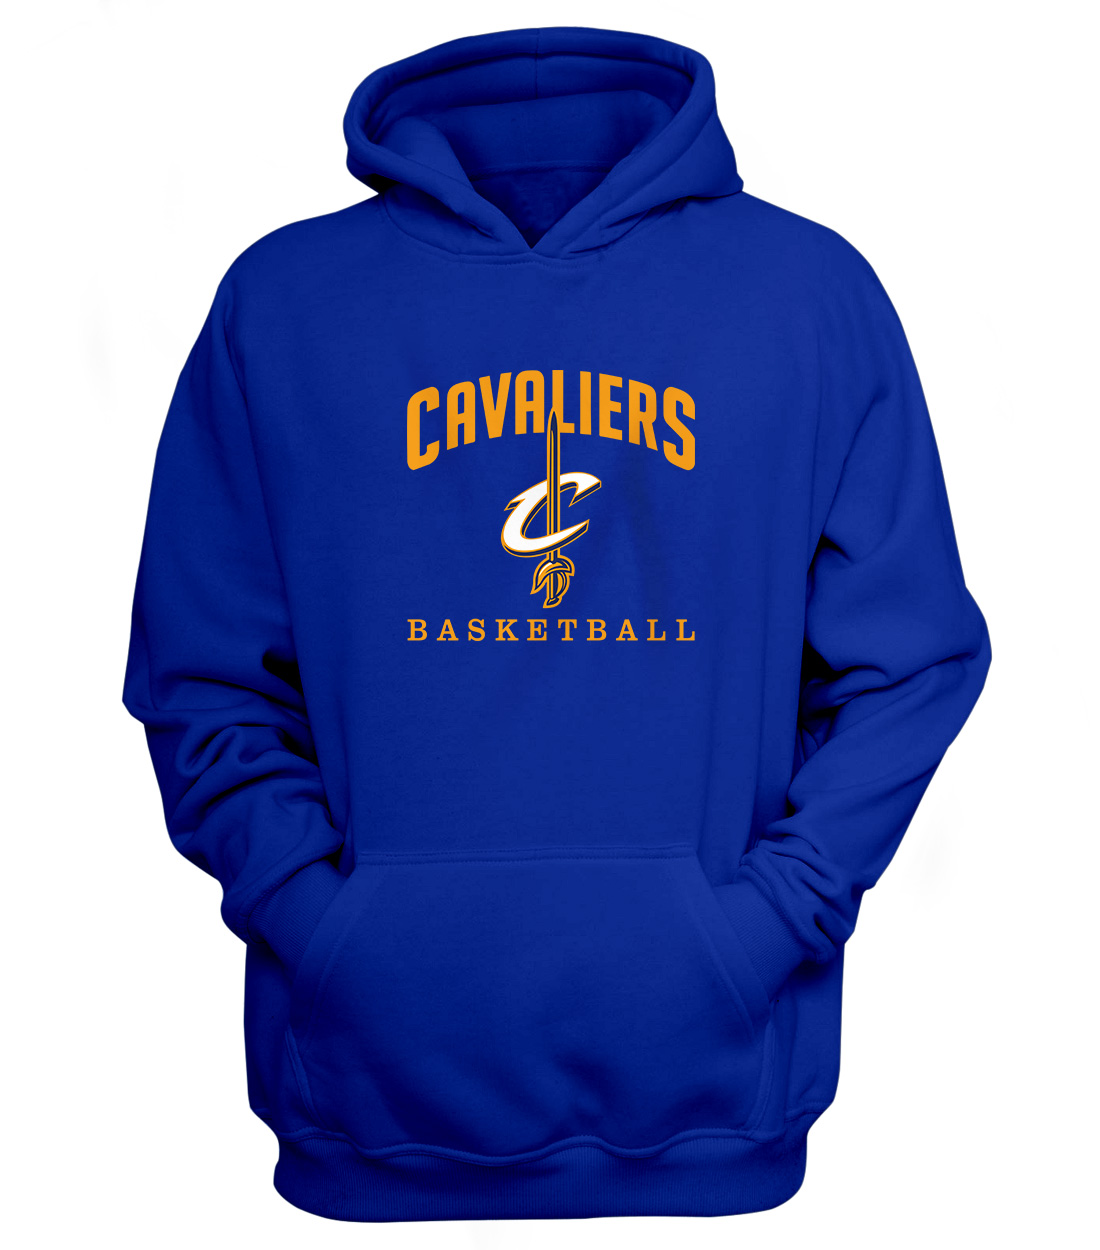 Cleveland Cavaliers Hoodie (HD-BLU-NP-61-NBA-CLE-CAVS.ARCH)